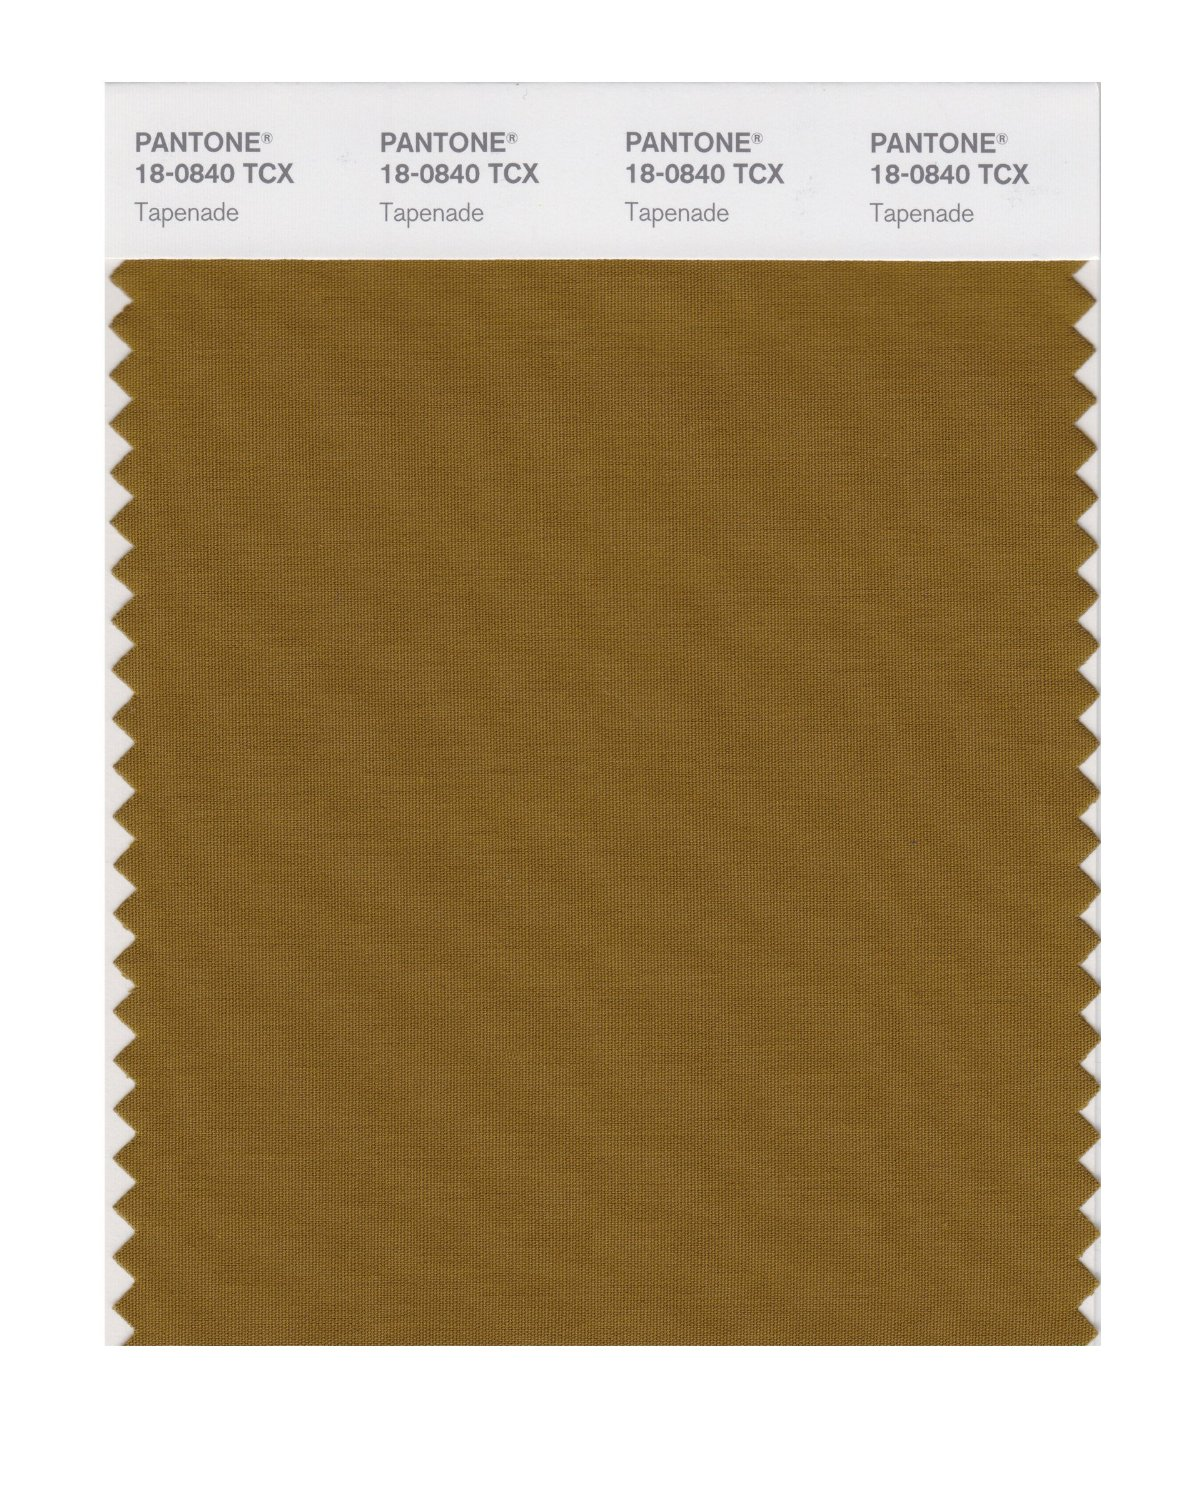 Pantone Smart Swatch 18-0840 Tapenade